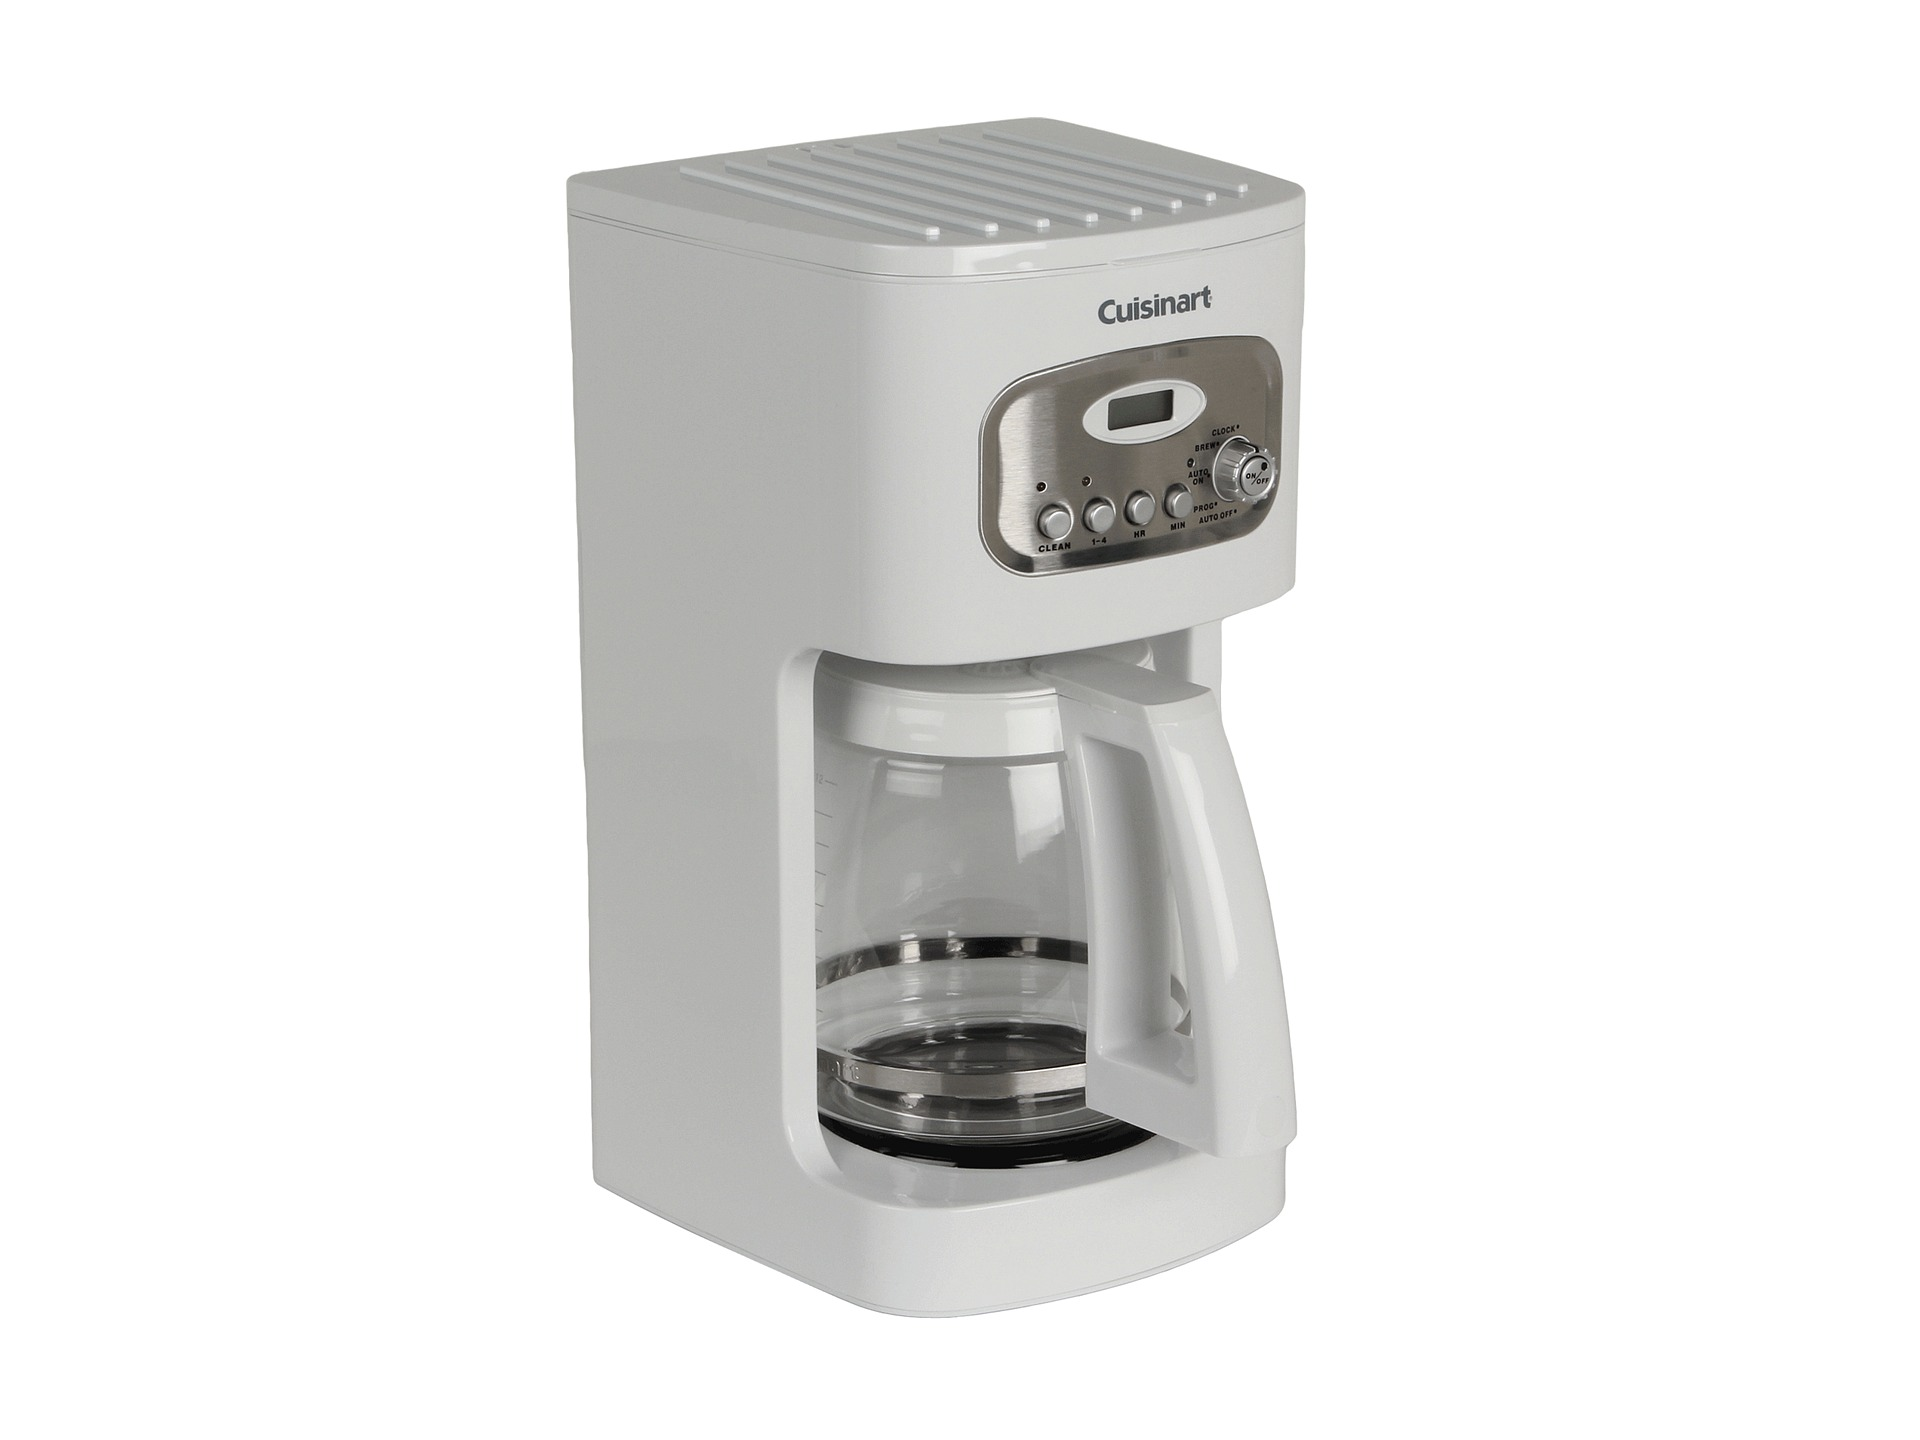 Cuisinart Dcc 1100 12 Cup Programmable Coffee Maker White Shipped Free at Zappos